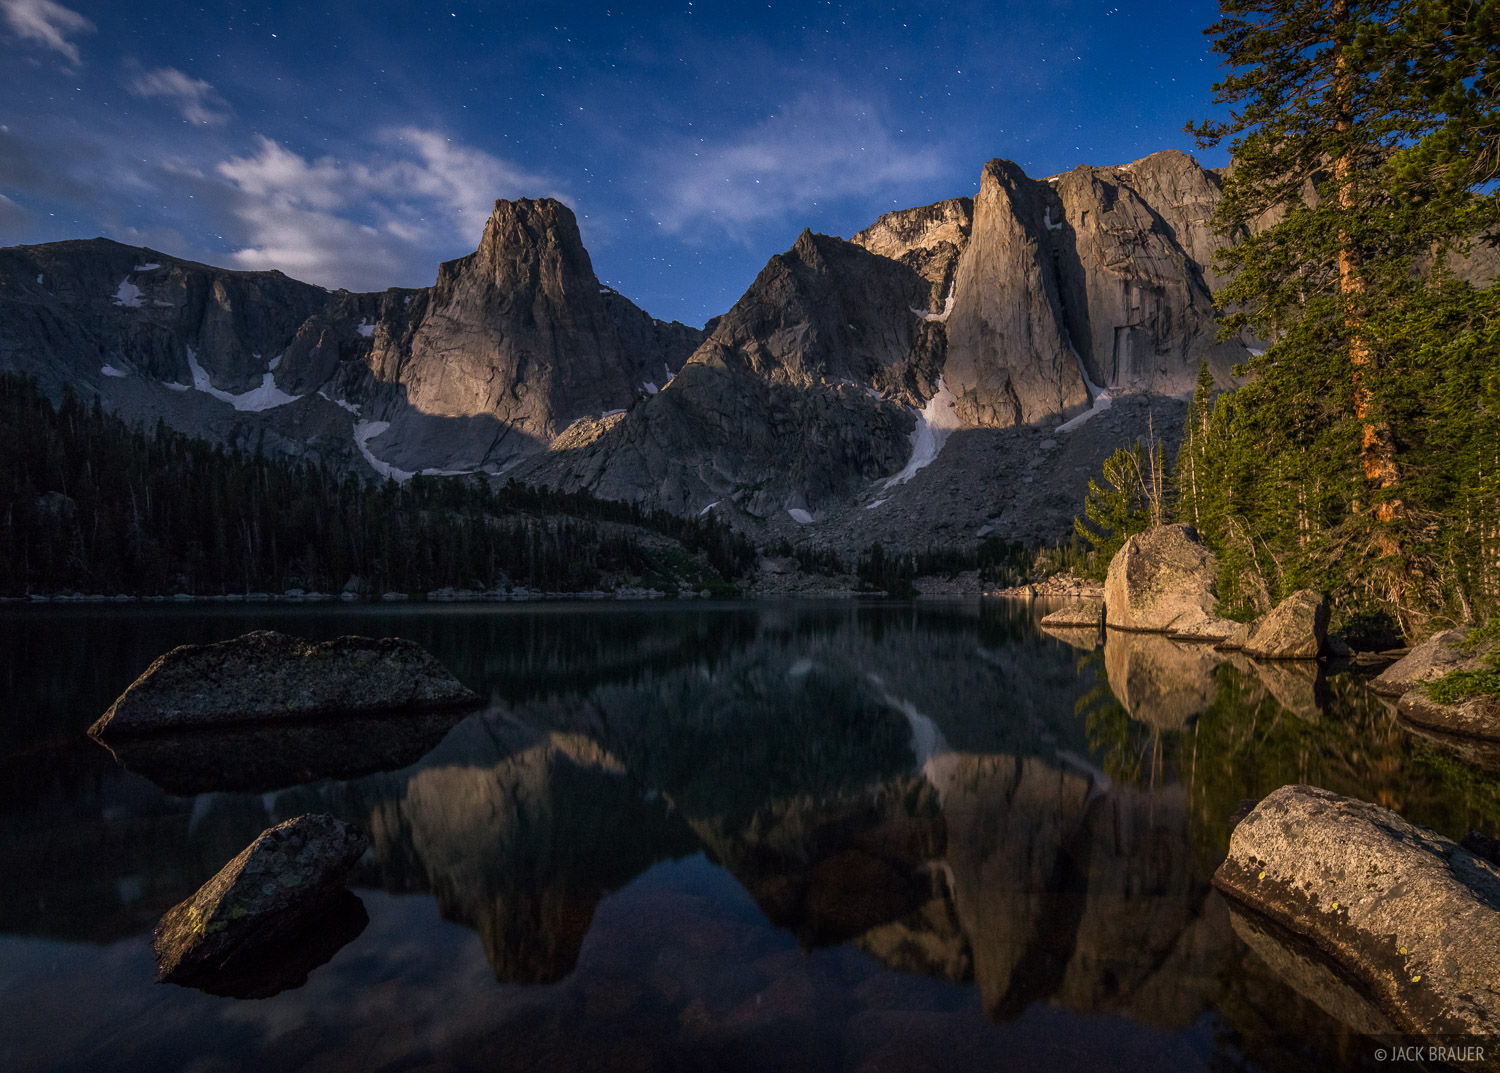 Papoose Lake,Wind River Range,Wyoming,moonlight, The Monolith, Dogtooth Mountain, photo